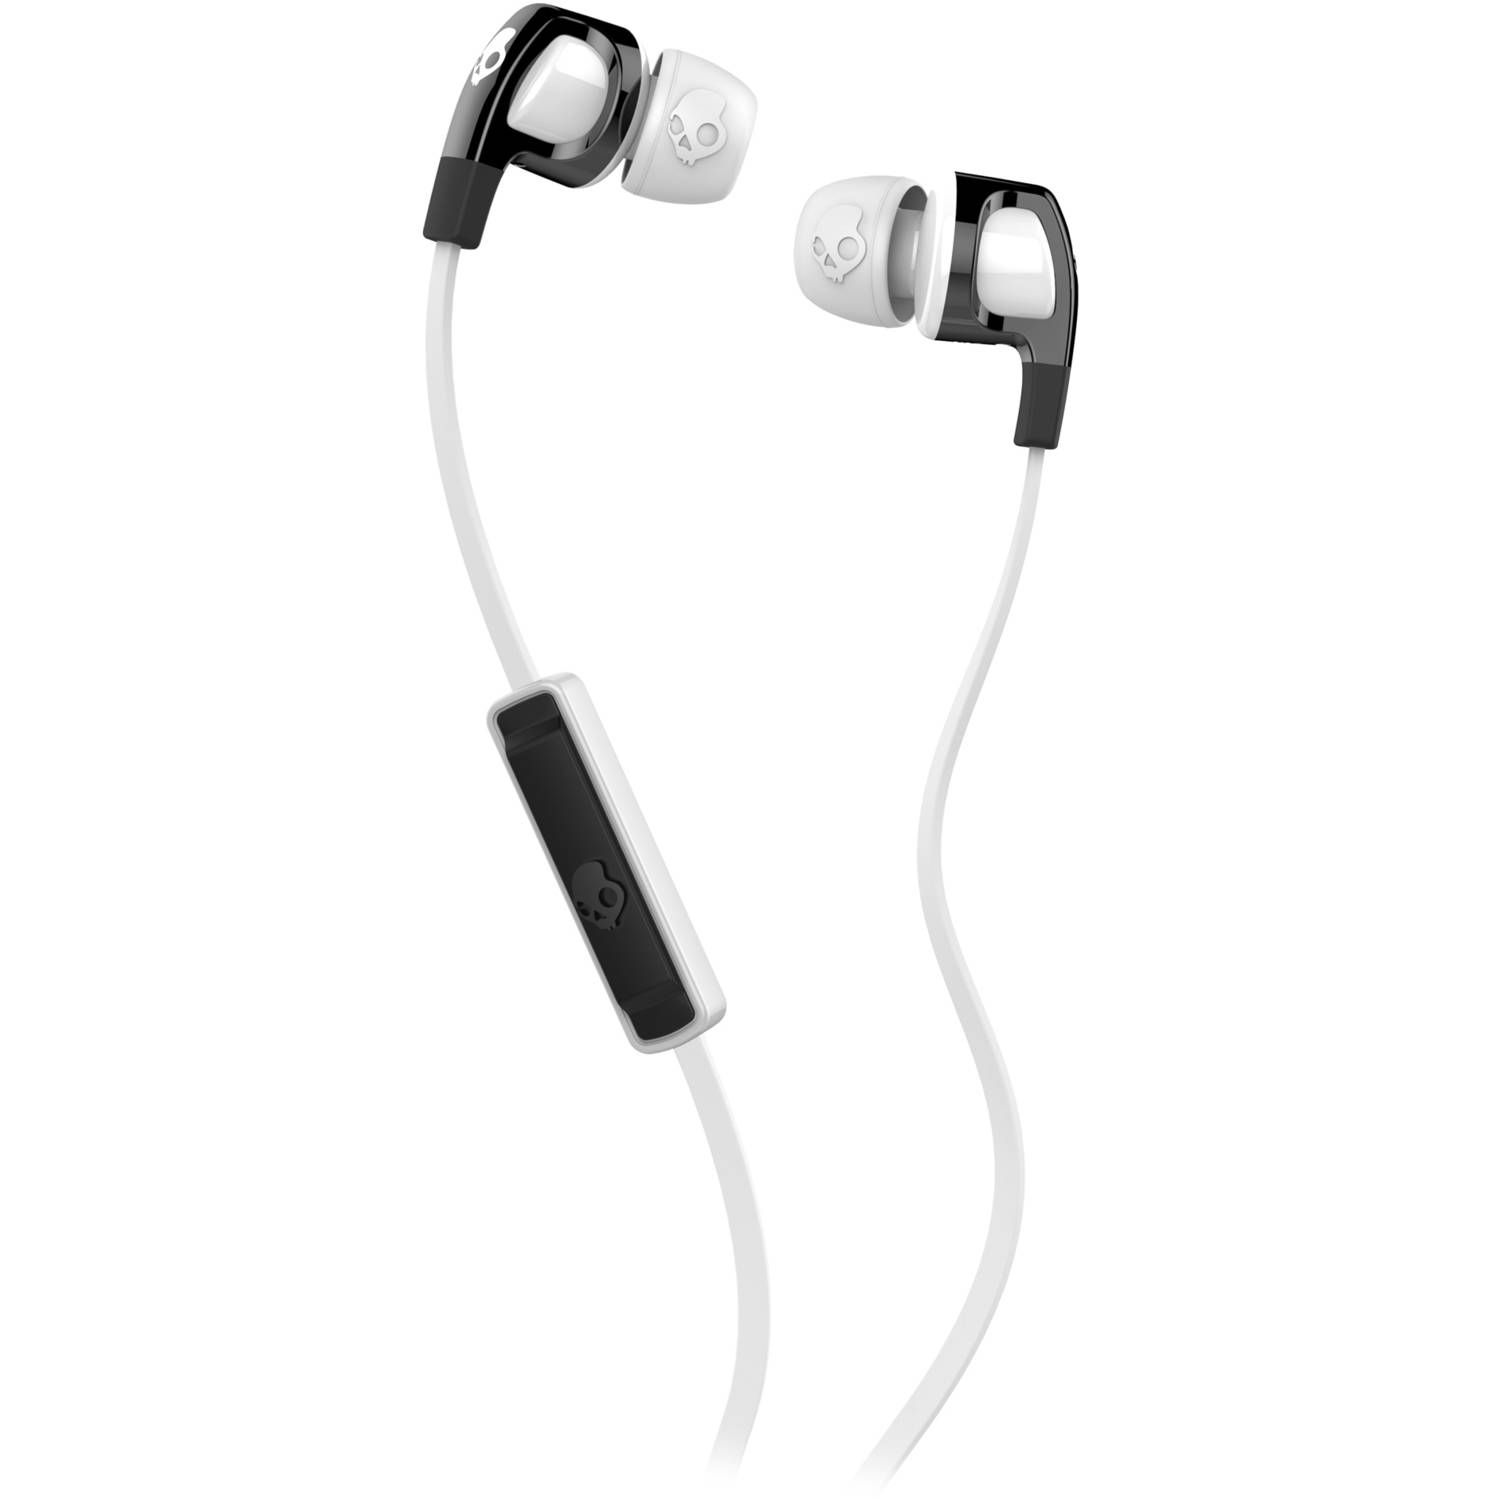 e9c614df157 Skullcandy Smokin' Buds 2 with Mic - Walmart.com